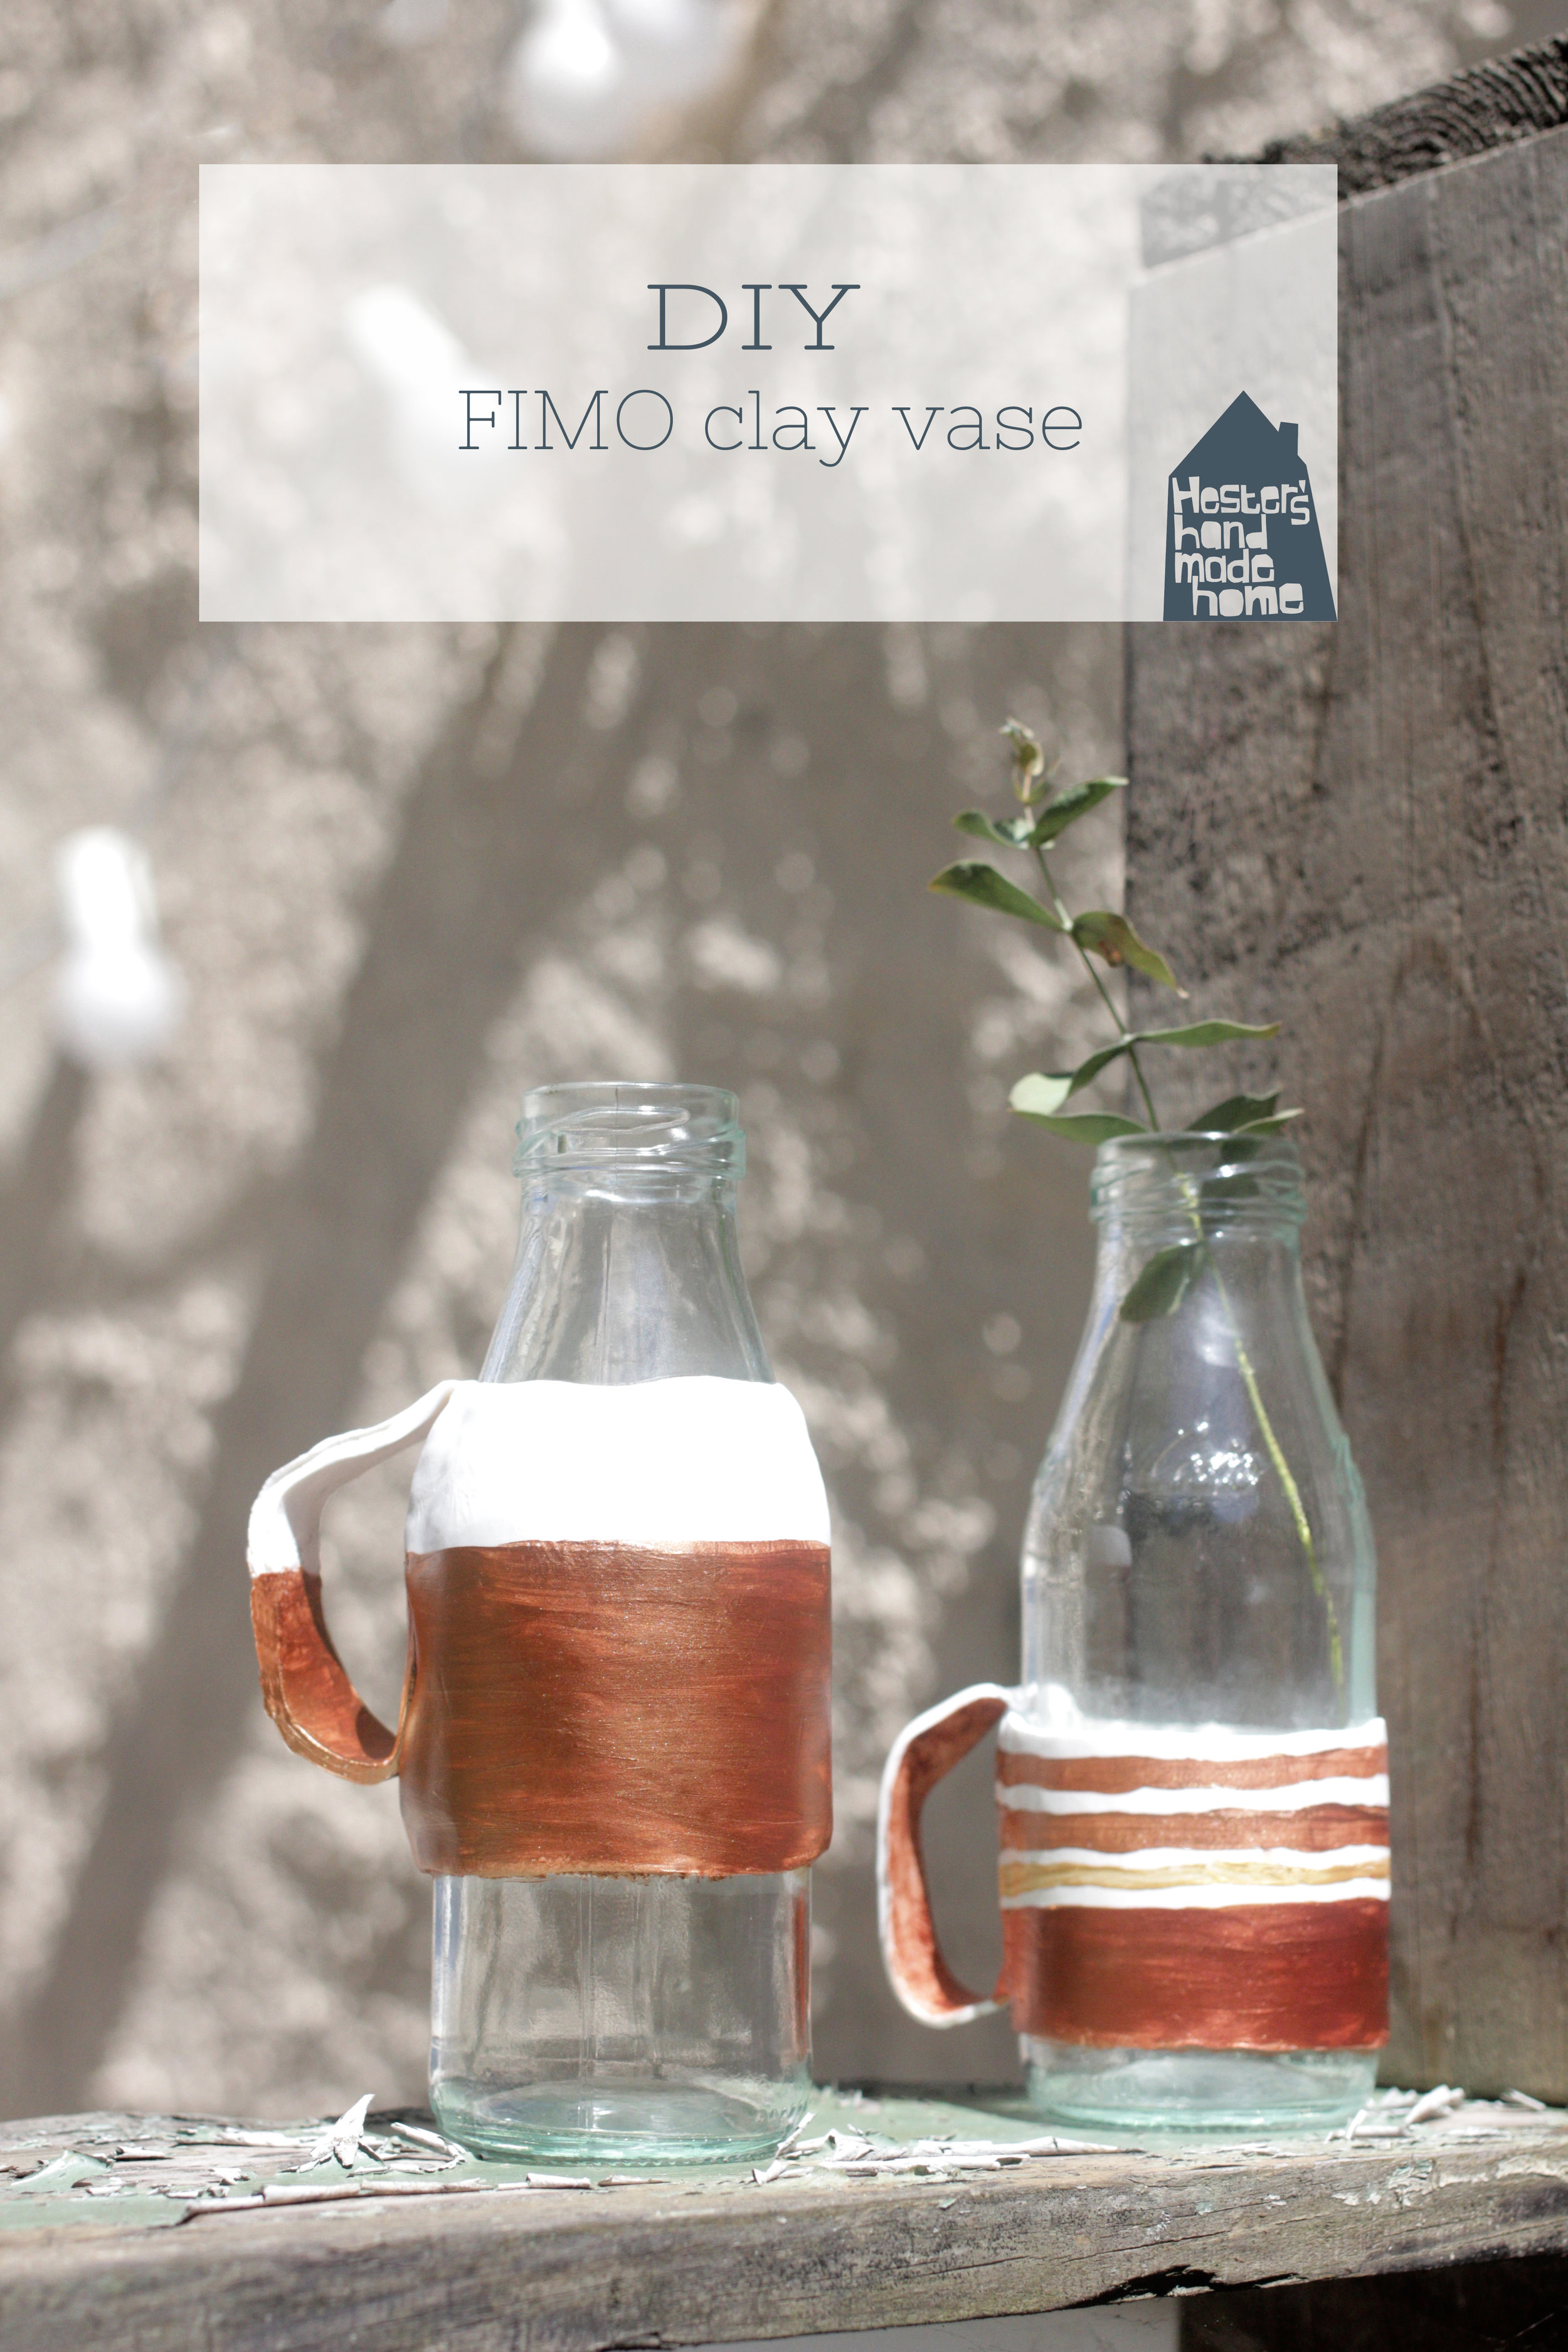 FIMO clay bottle to vase hack by www.hestershandmadehome.com